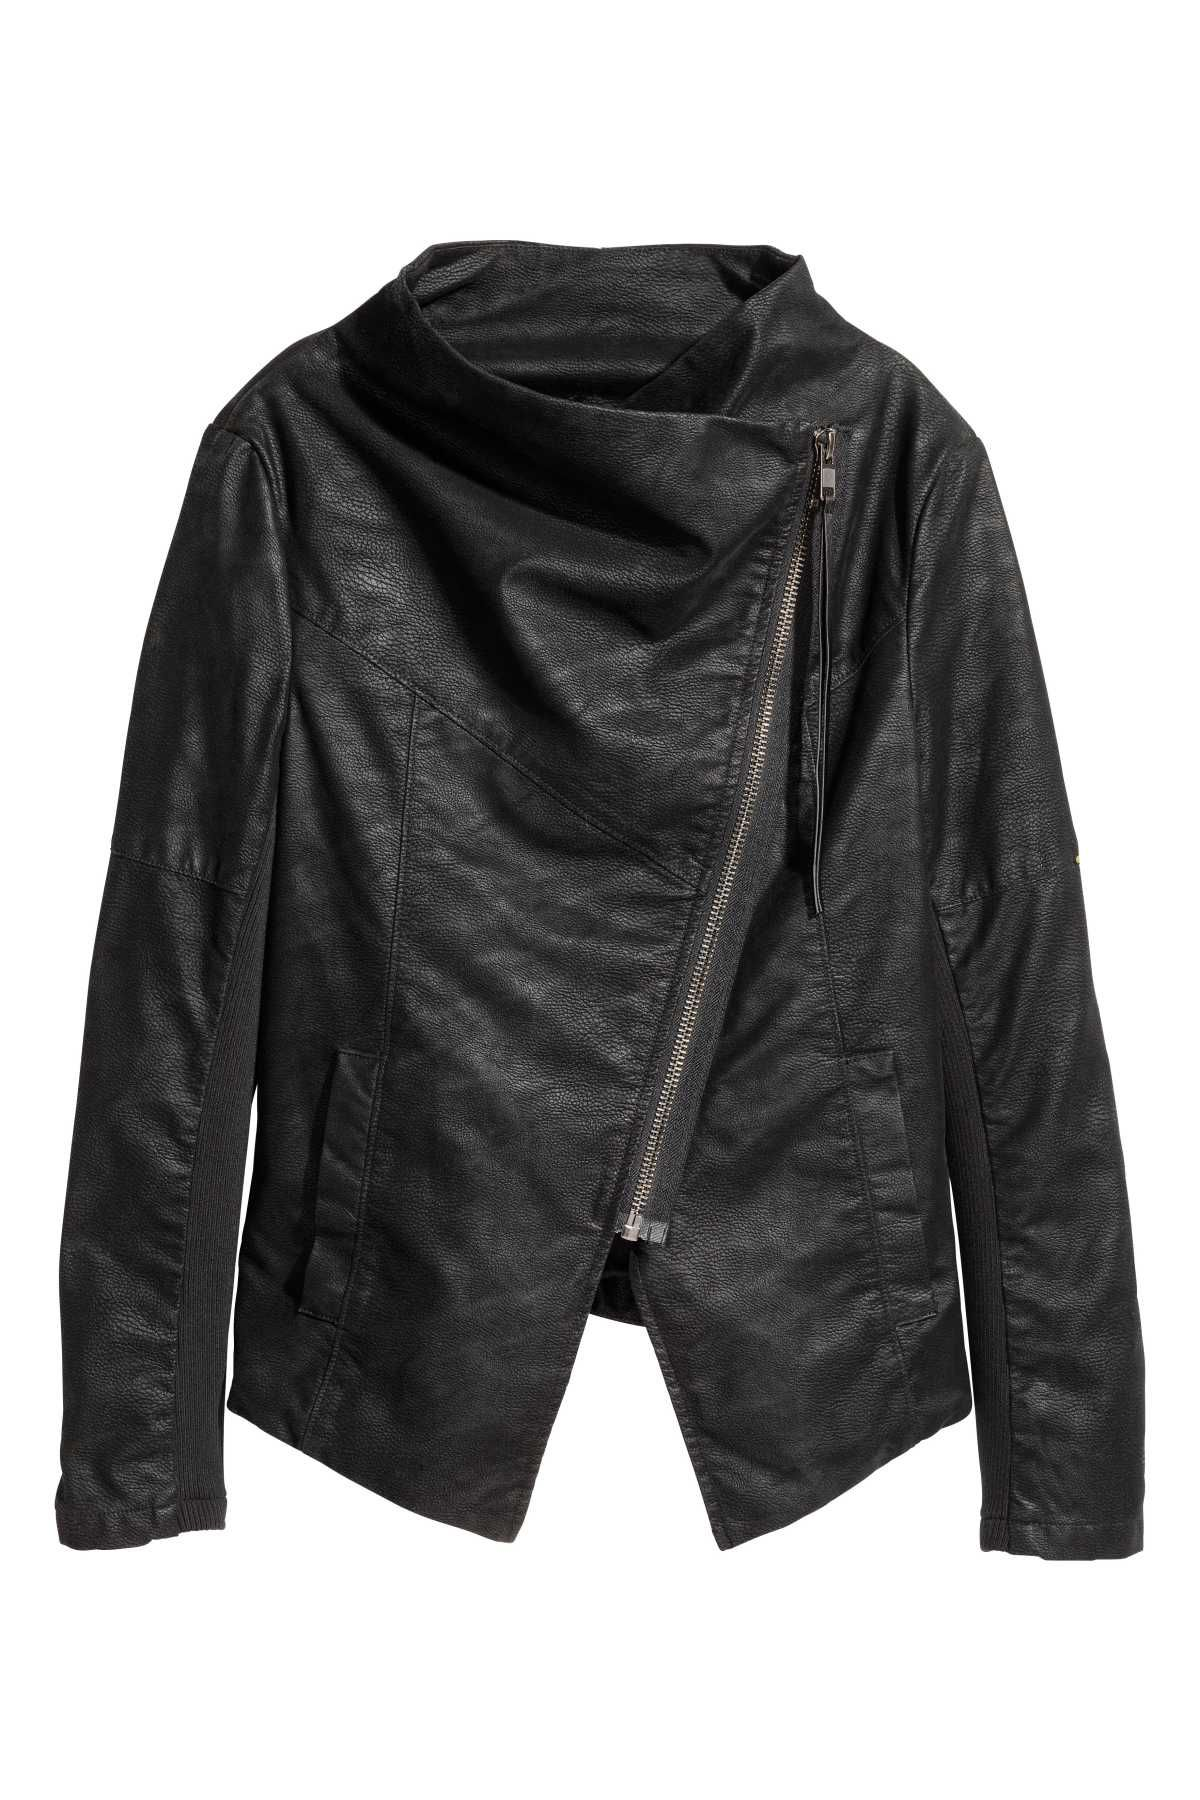 Black. Biker jacket in faux leather with a diagonal zip at